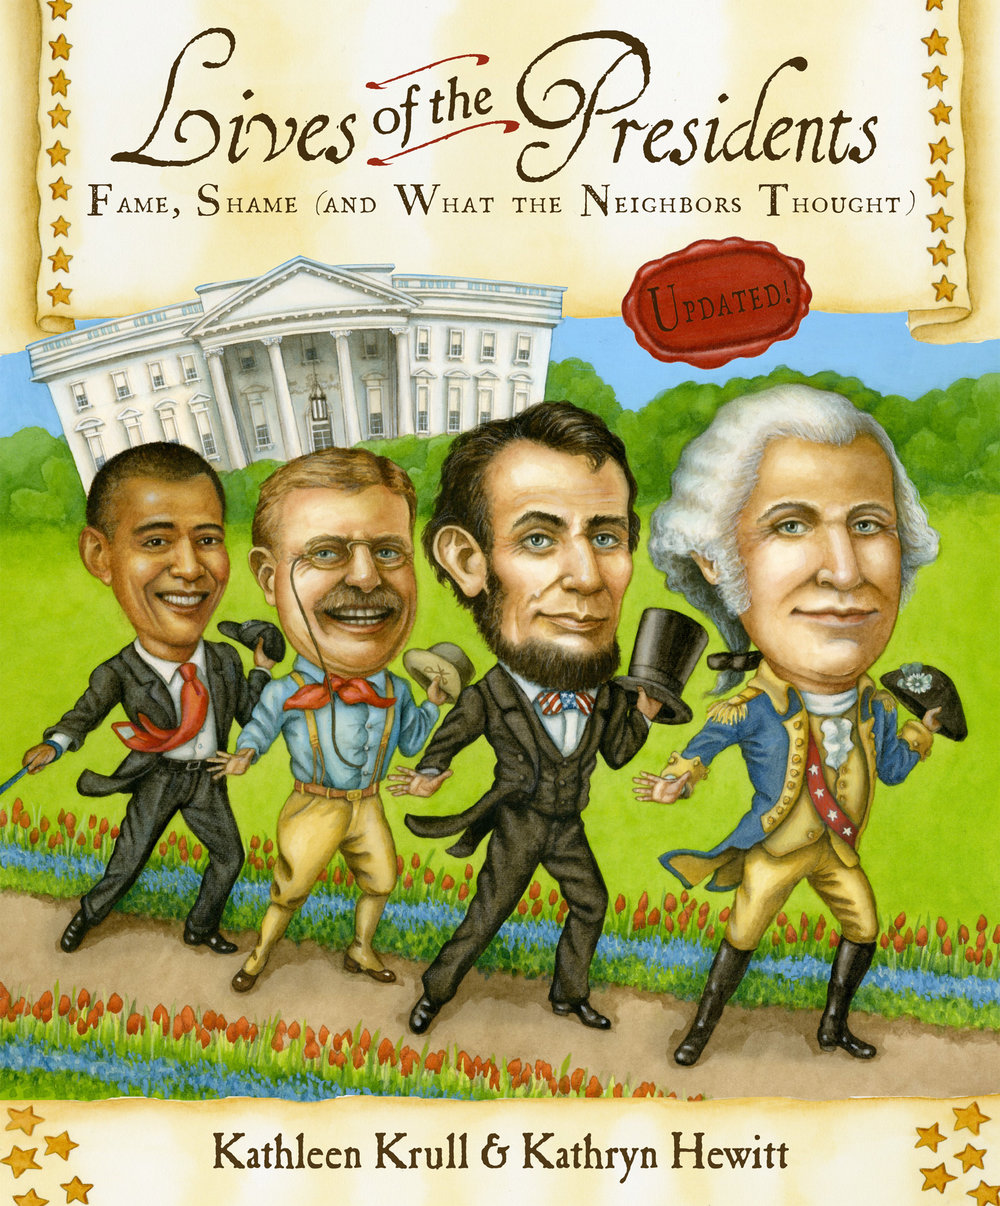 Lives of the Presidents: Fame, Shame (and What the Neighbors Thought) - Kathleen Krull, illustrated by Kathryn Hewitt       Houghton Mifflin Harcourt 2011Every U.S. president is the focus of public scrutiny, but how well do we know these men? What kind of fathers do presidents make? Husbands? Neighbors? Other books focus on the historical achievements of those who have occupied our country's highest office; Lives of the Presidents looks instead at their bad habits, silly nicknames, and strange pets. Every president—from George Washington to Barack Obama—is included, with an emphasis on those who have had the greatest impact on history. Discover their high points, low points, and the times in between. In this stunning addition to their acclaimed series, Kathleen Krull and Kathryn Hewitt take us beyond politics and photo opportunities, revealing the entertaining, complex, and very real lives of the presidents.